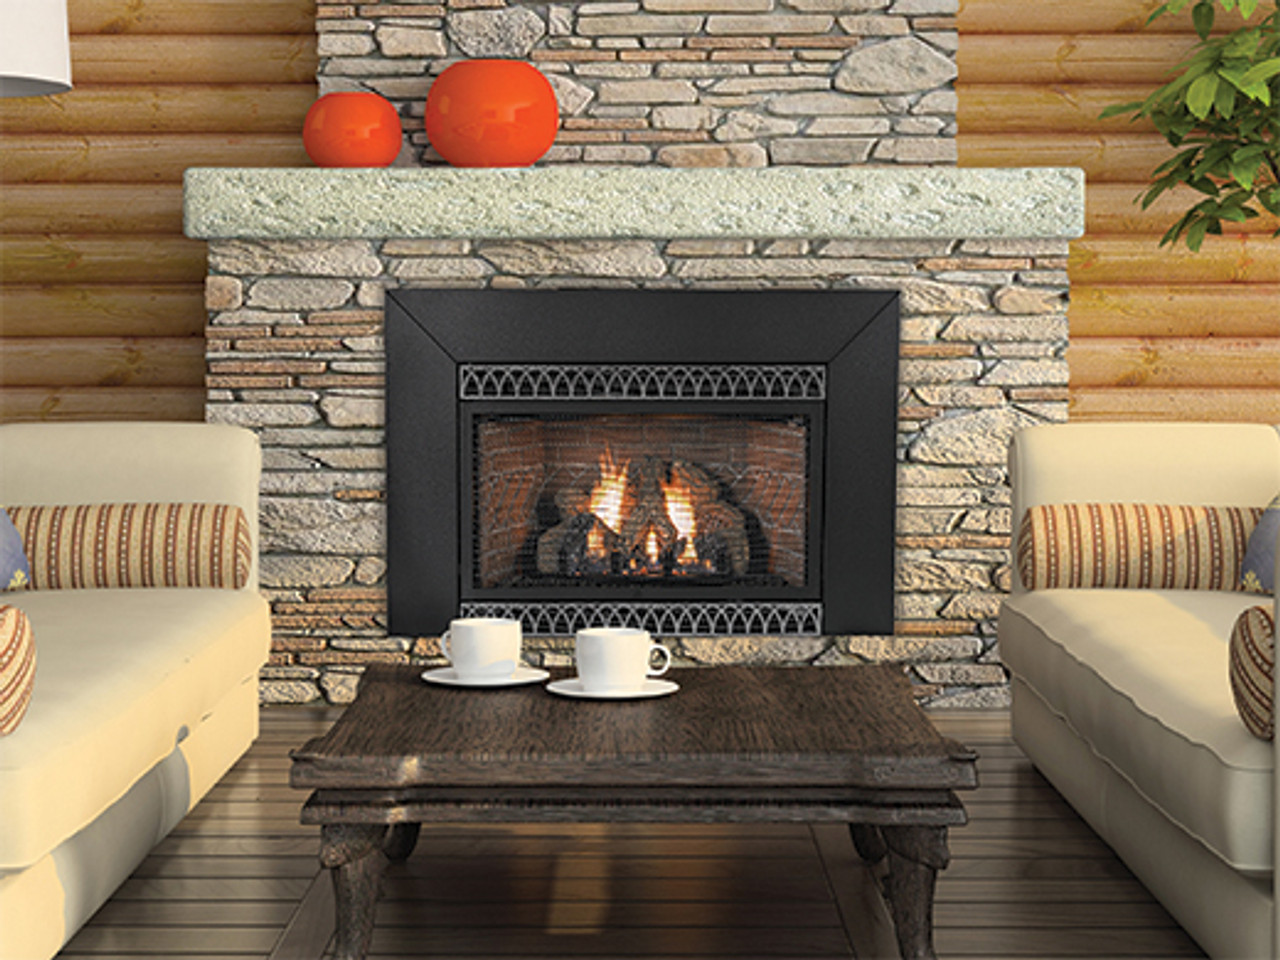 Empire The Innsbrook Vent-Free Cleanface Insert/Fireplace with Barrier - Intermittent Pilot Control with On/Off Switch - 28,000 Btu